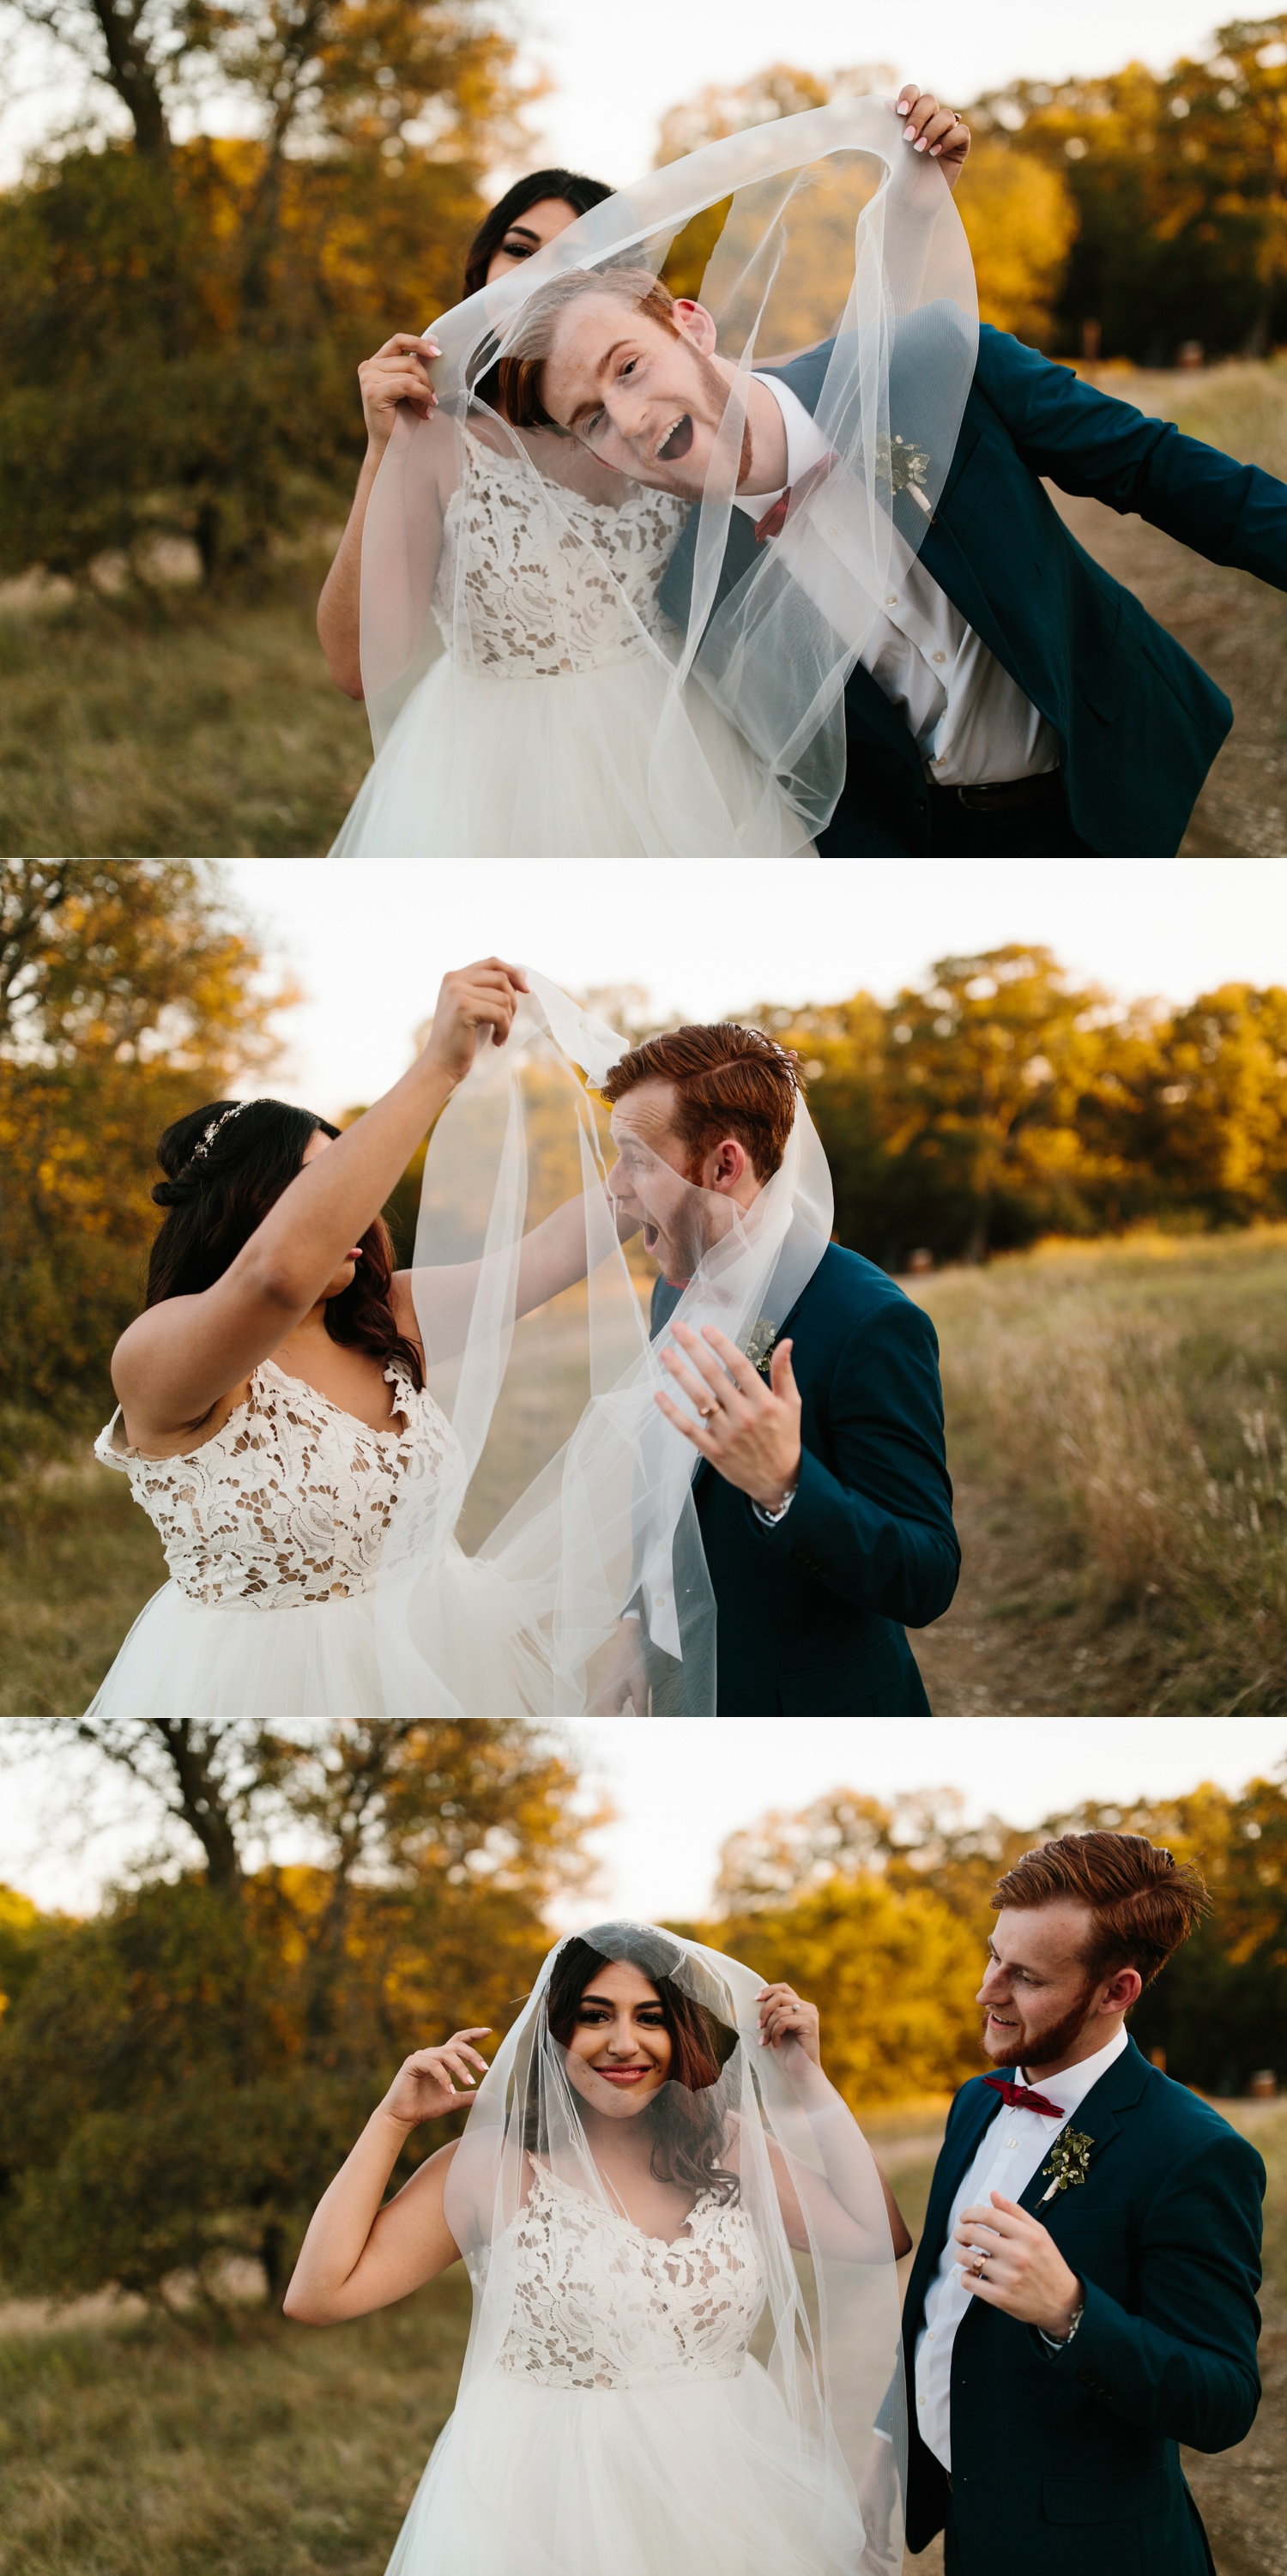 Grant + Lysette | a vibrant, deep burgundy and navy, and mixed metals wedding at Hidden Pines Chapel by North Texas Wedding Photographer Rachel Meagan Photography 250